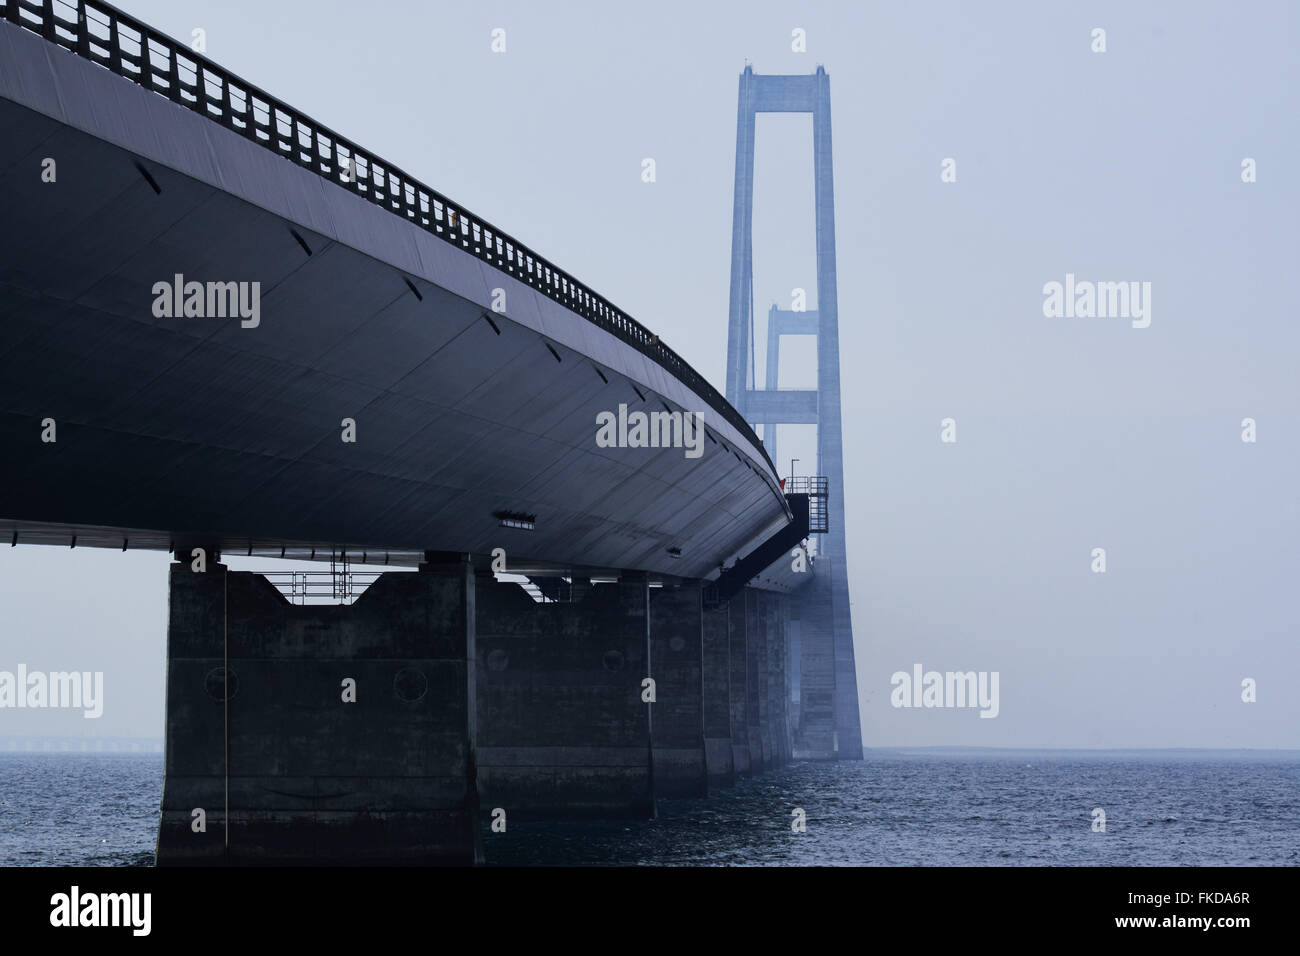 A look a long the north side of the Great belt bridge seen from the Sealand side - Stock Image